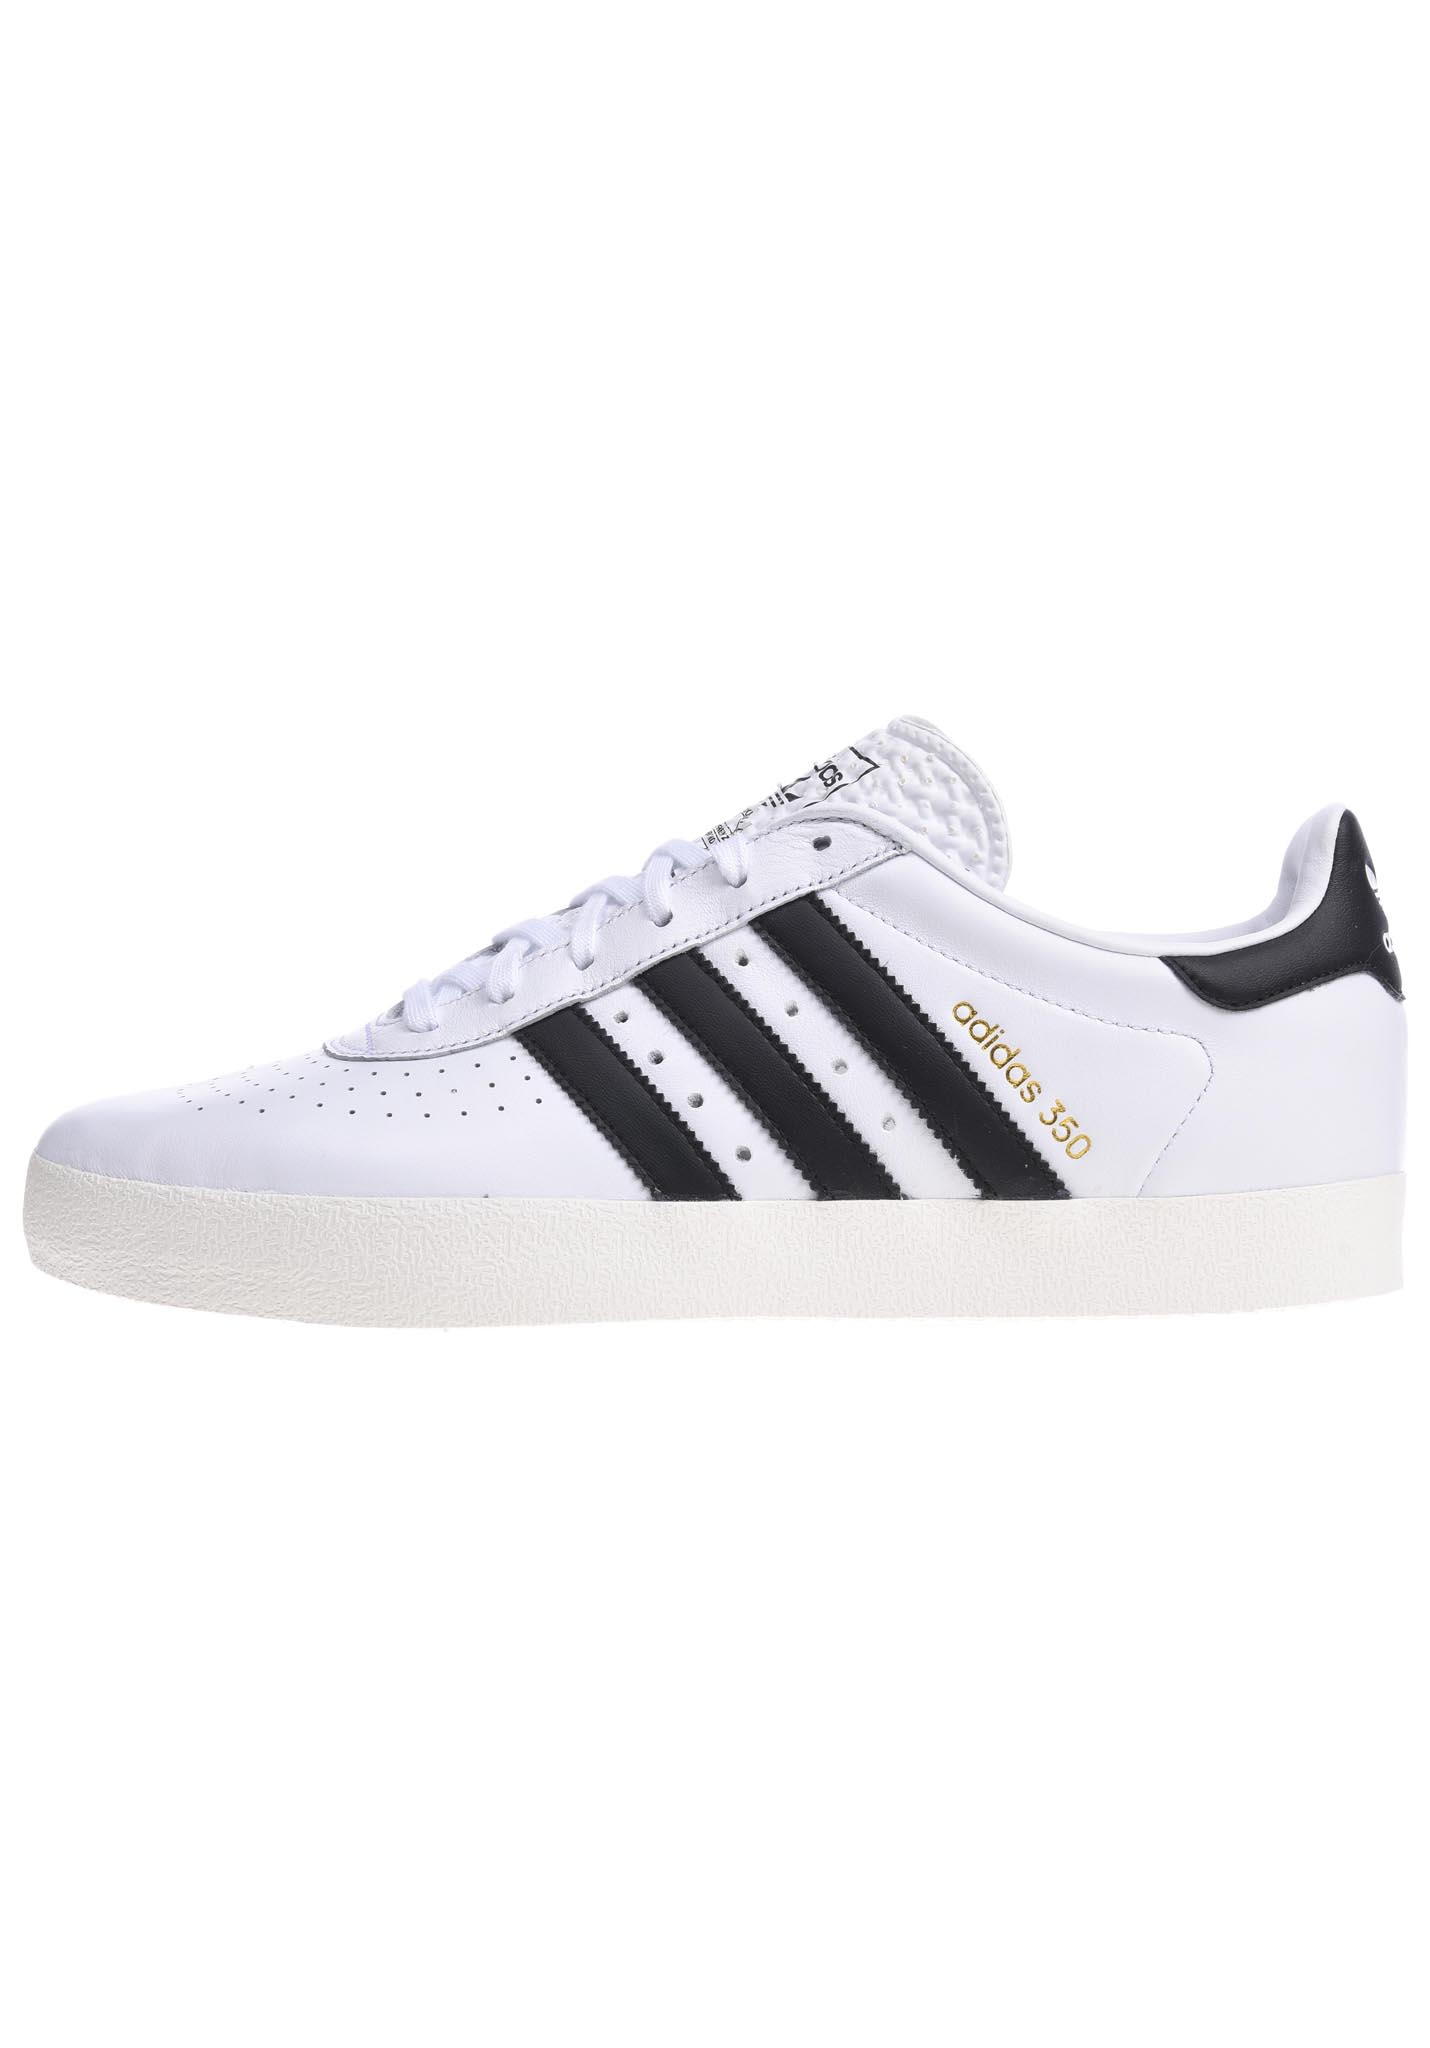 Cheap adidas Court Shoes Sale: Mens adidas 350 Shoes White